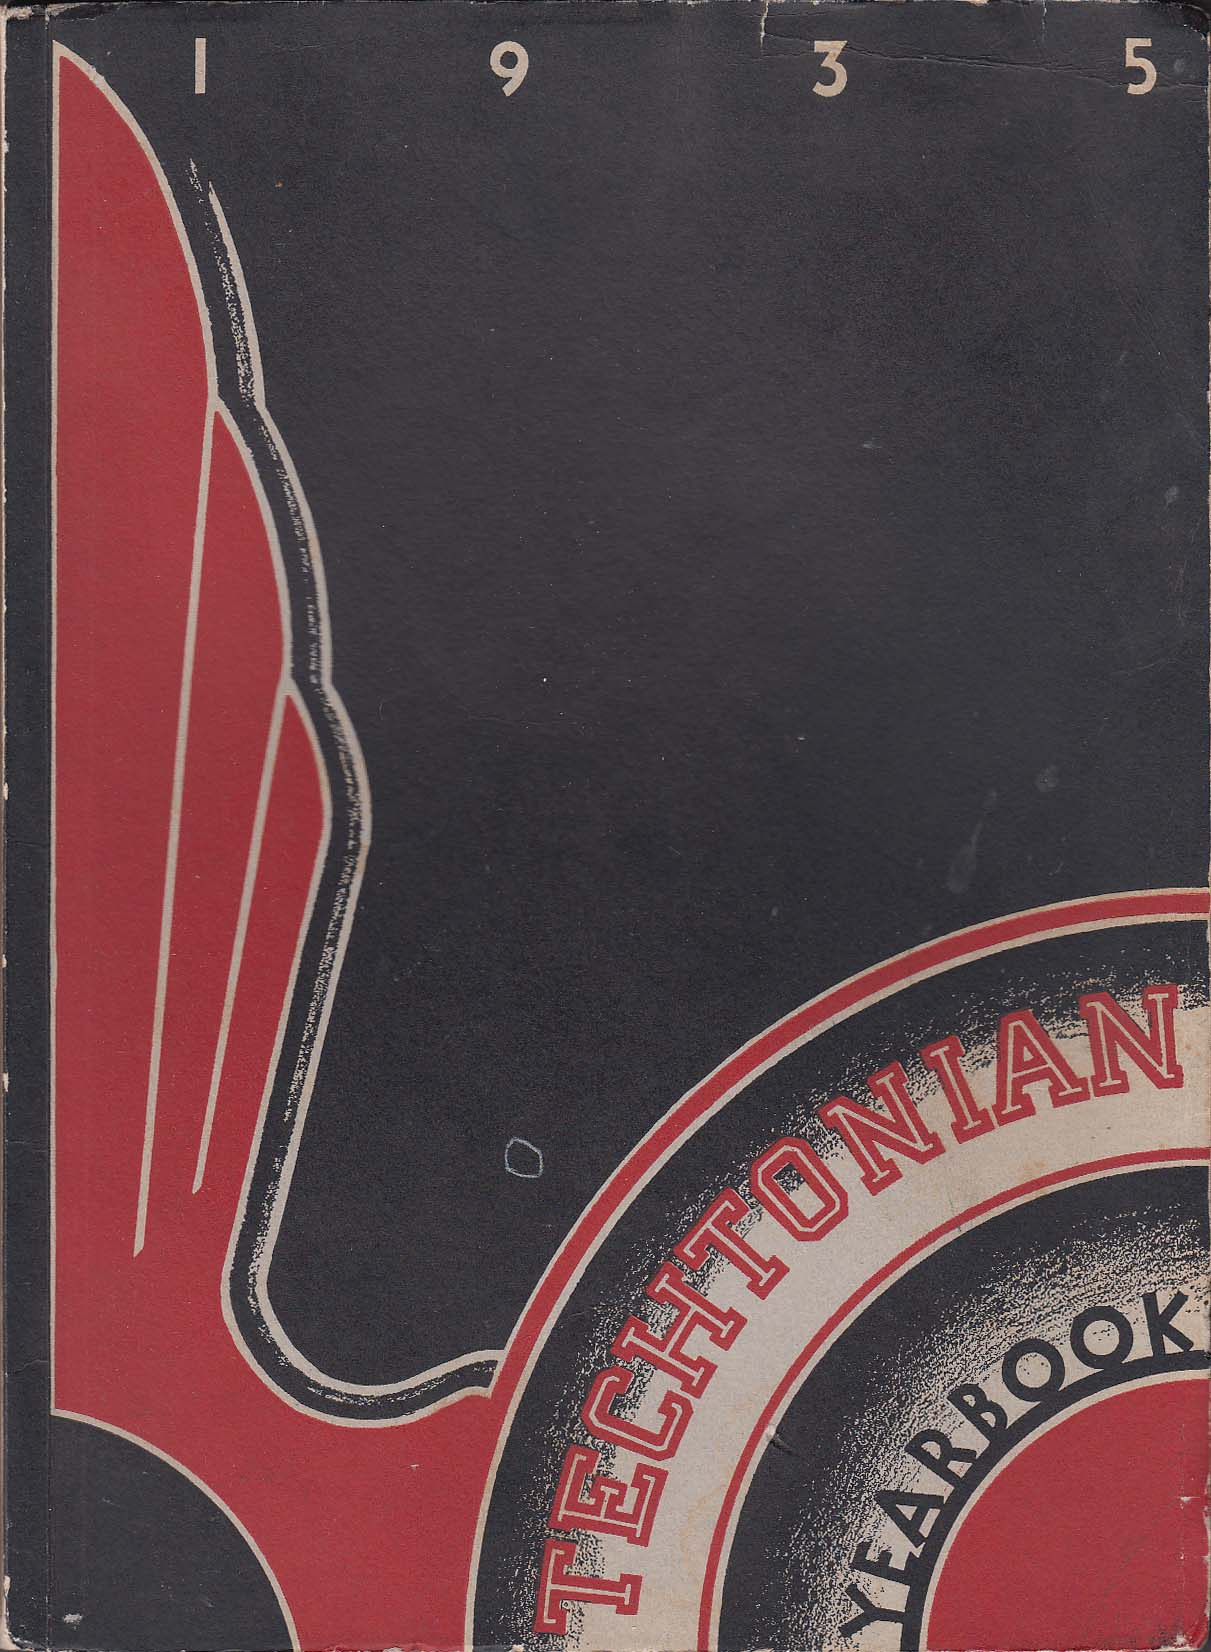 1935 Techtonian Yearbook Technical High School Buffalo New York